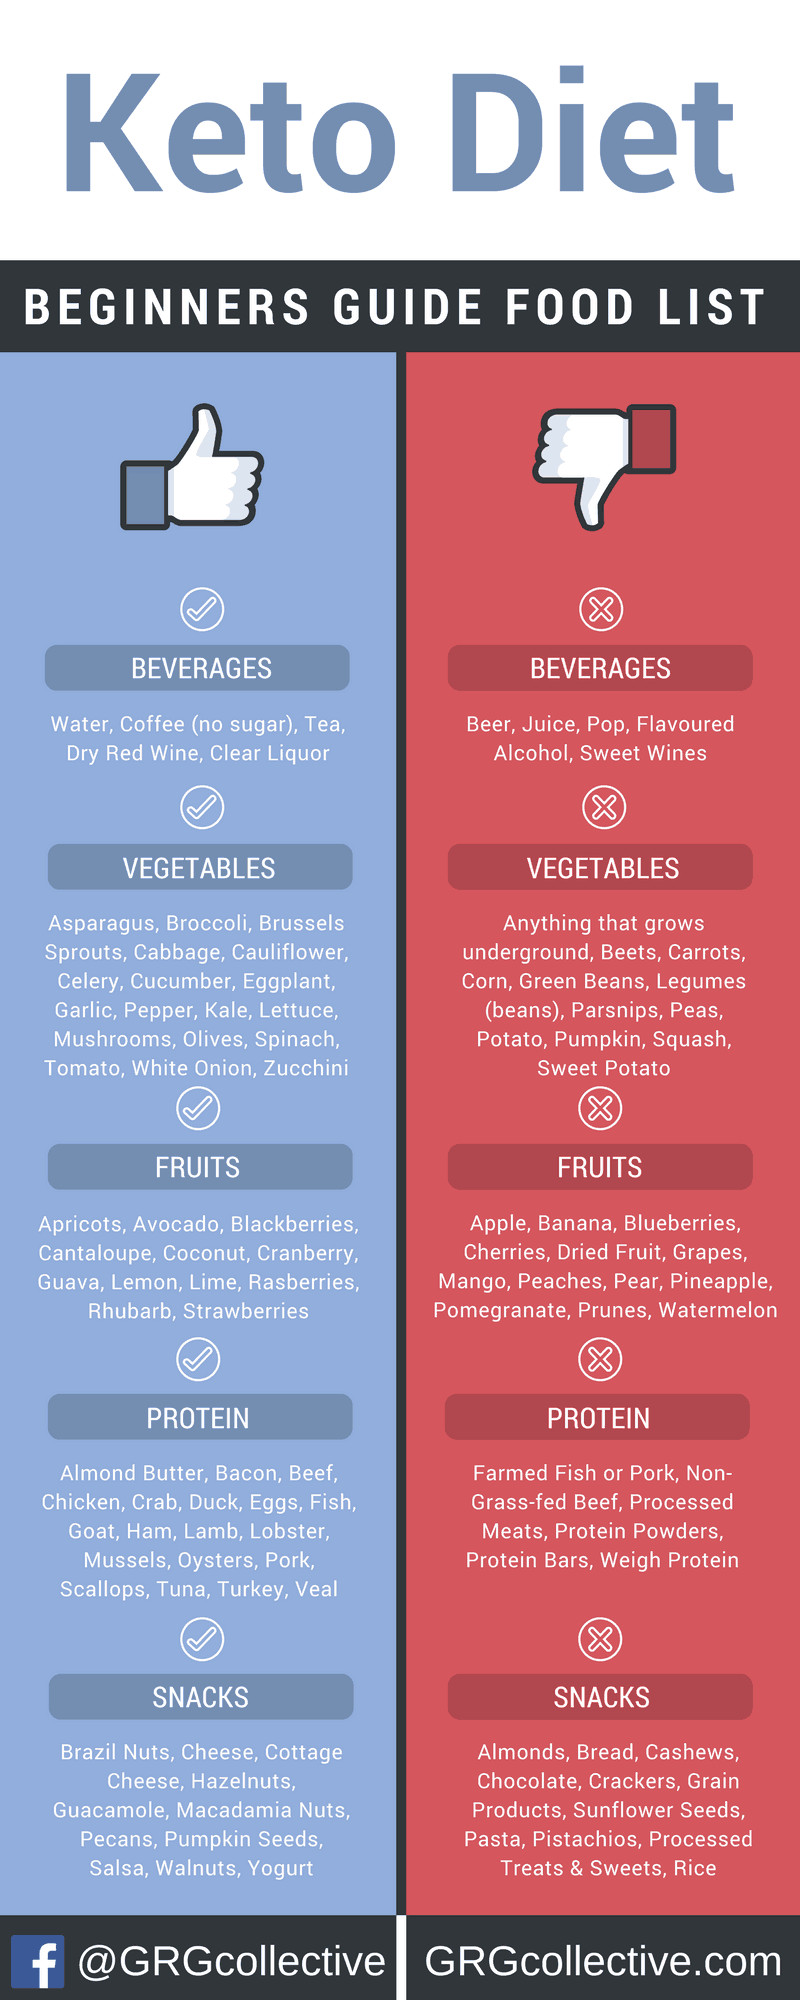 Ketosis Diet For Beginners  Infographic The Ultimate Keto Food List for Beginners